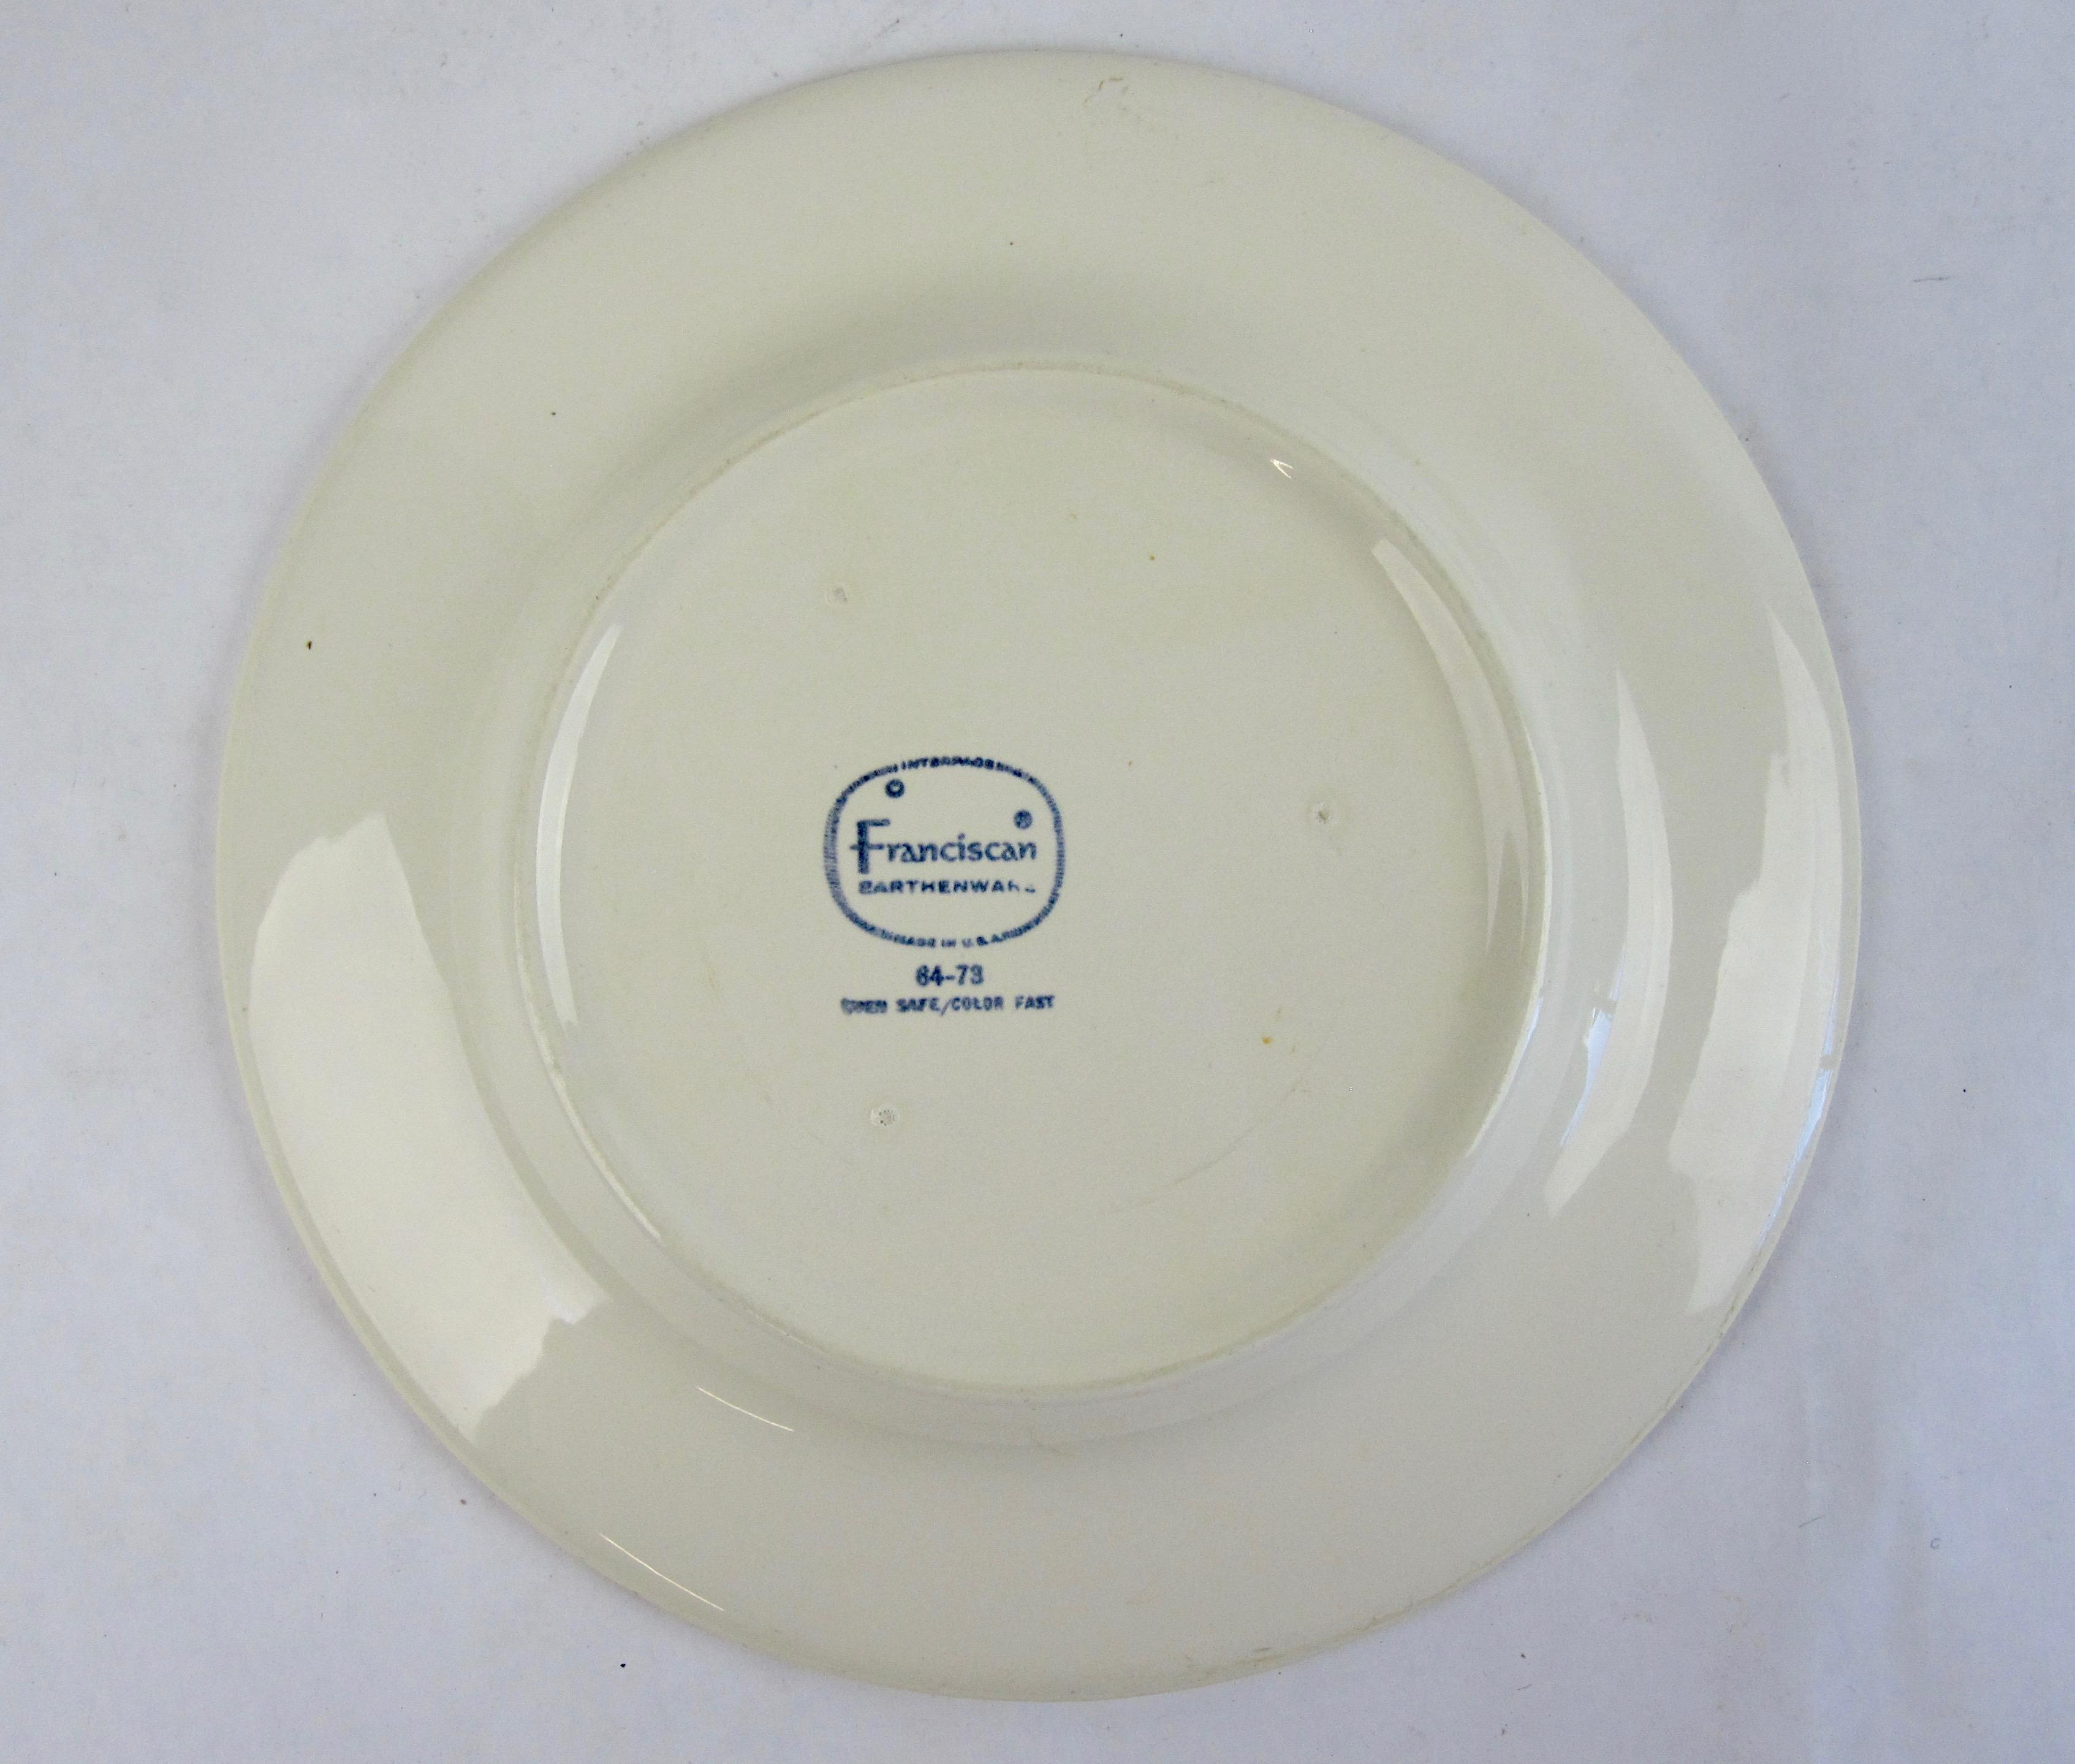 Franciscan Earthenware Salad Dishes - Set of 7 - Image 5 of 6  sc 1 st  Chairish : franciscan dinnerware - pezcame.com